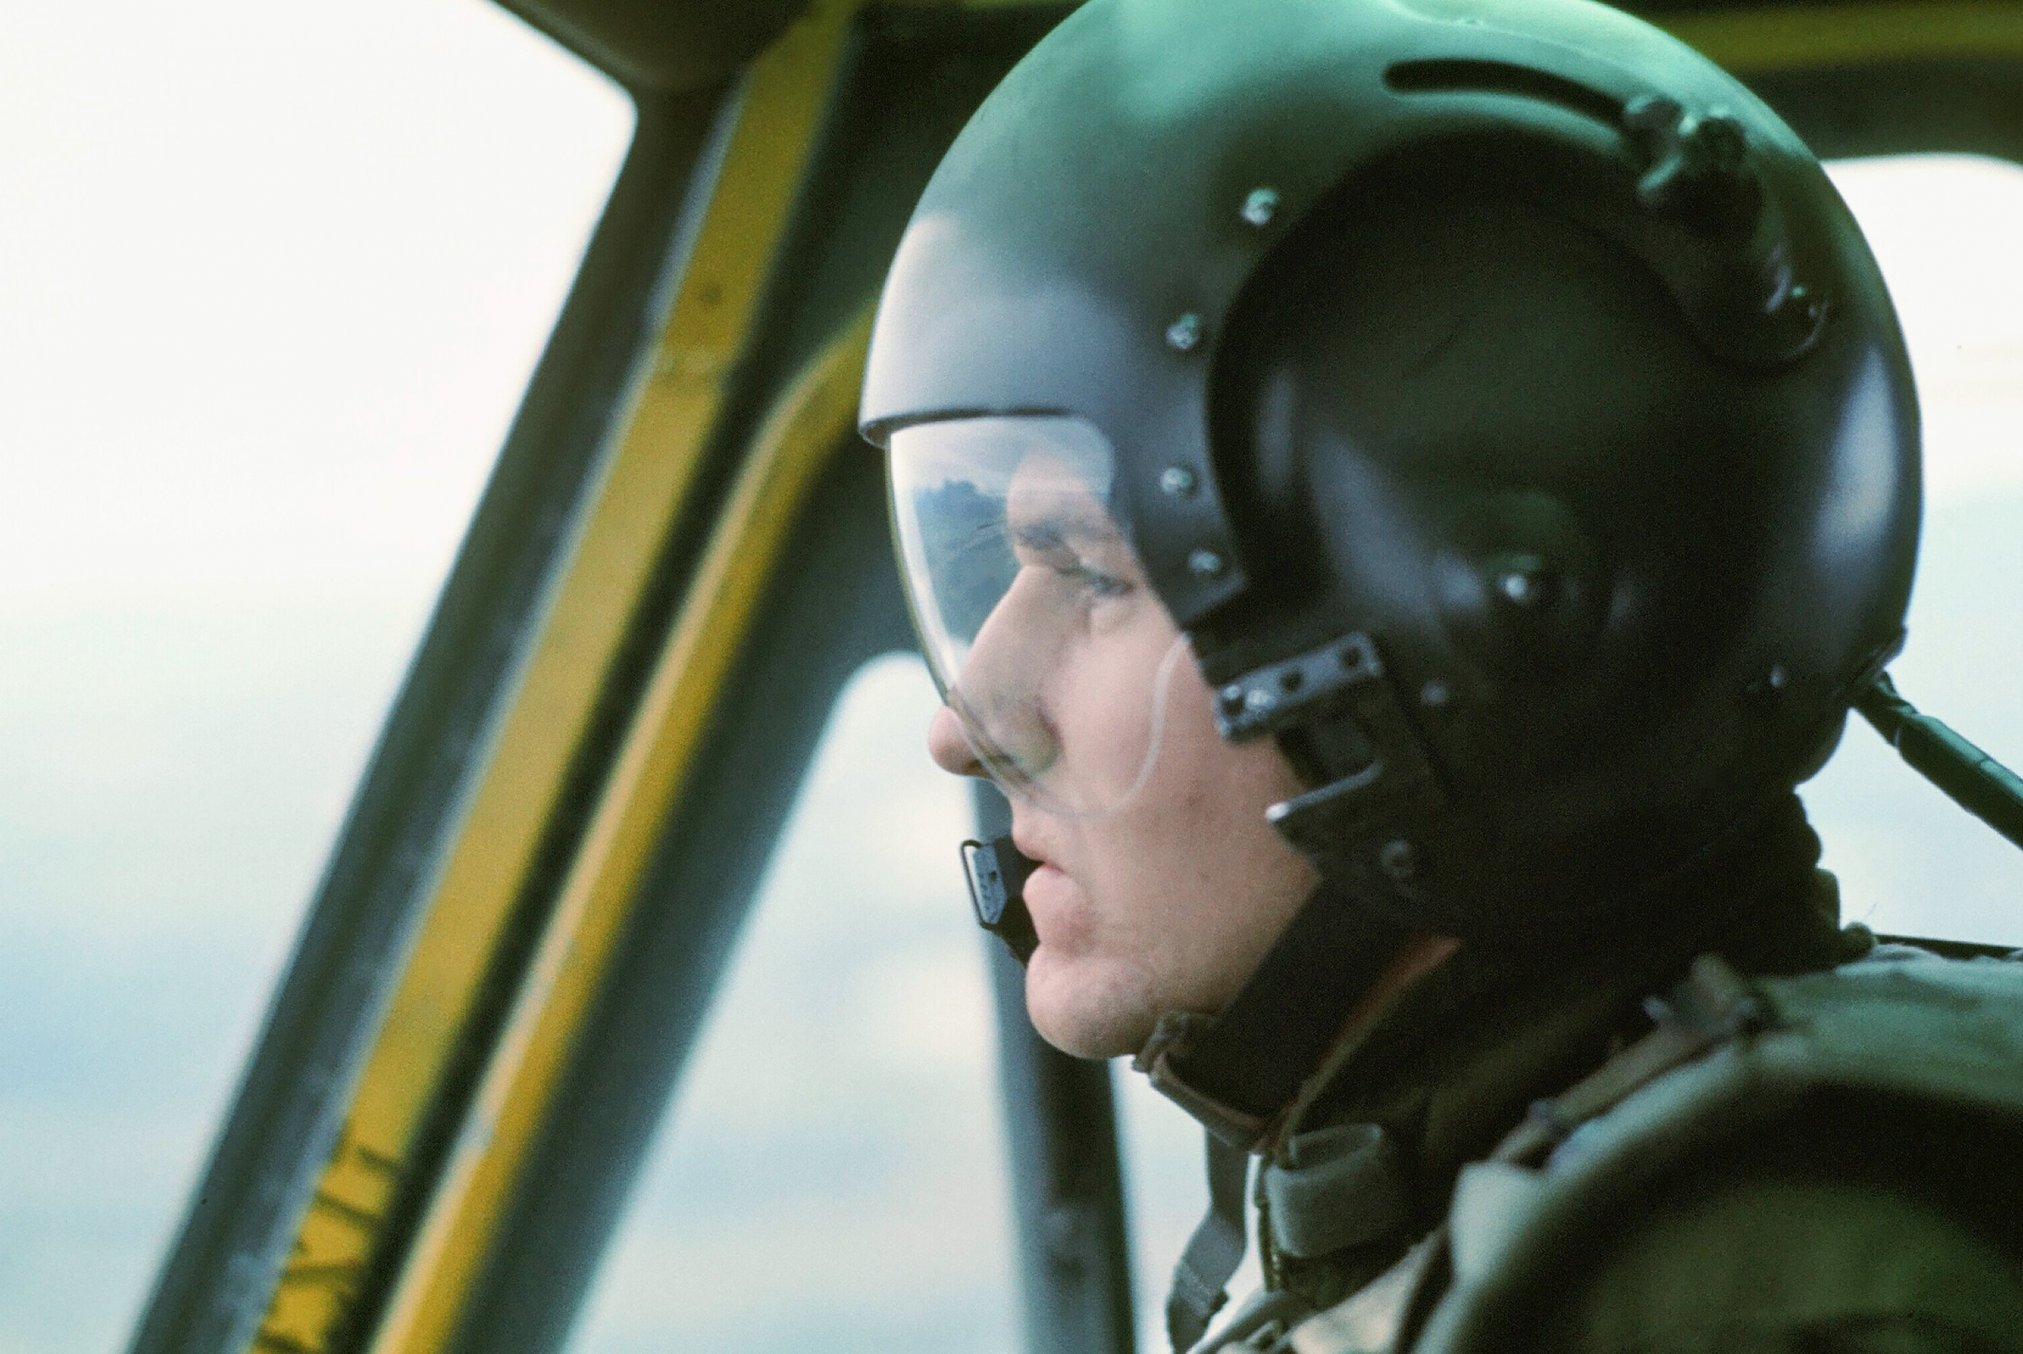 A profile of a young pilot in a plane, wearing a helmet and goggles.